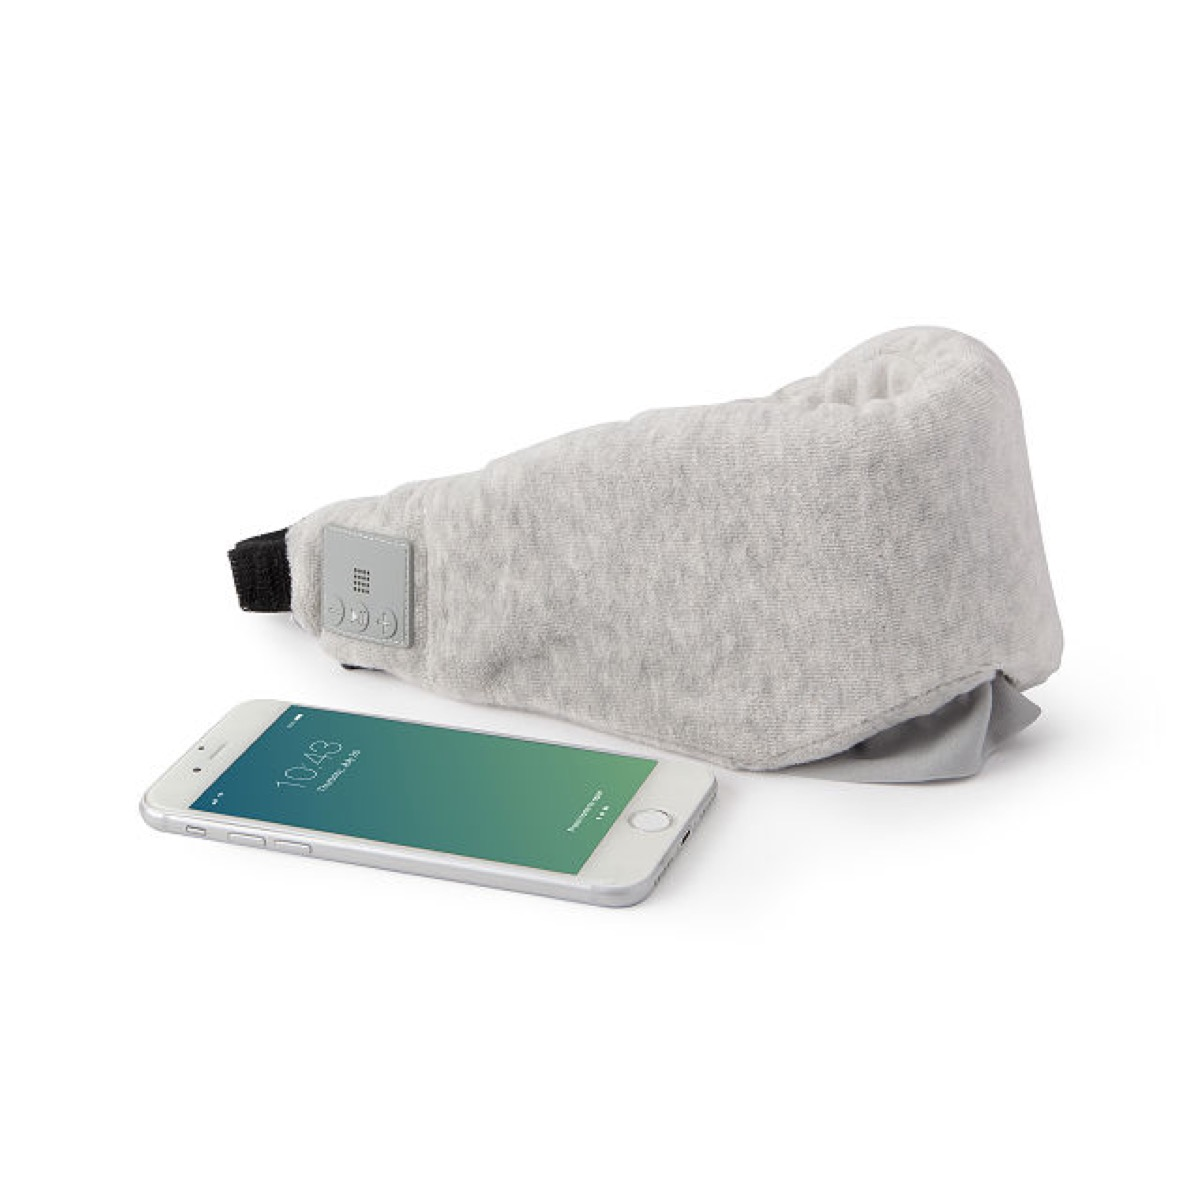 tune out musical sleep mask in gray next to white smartphone